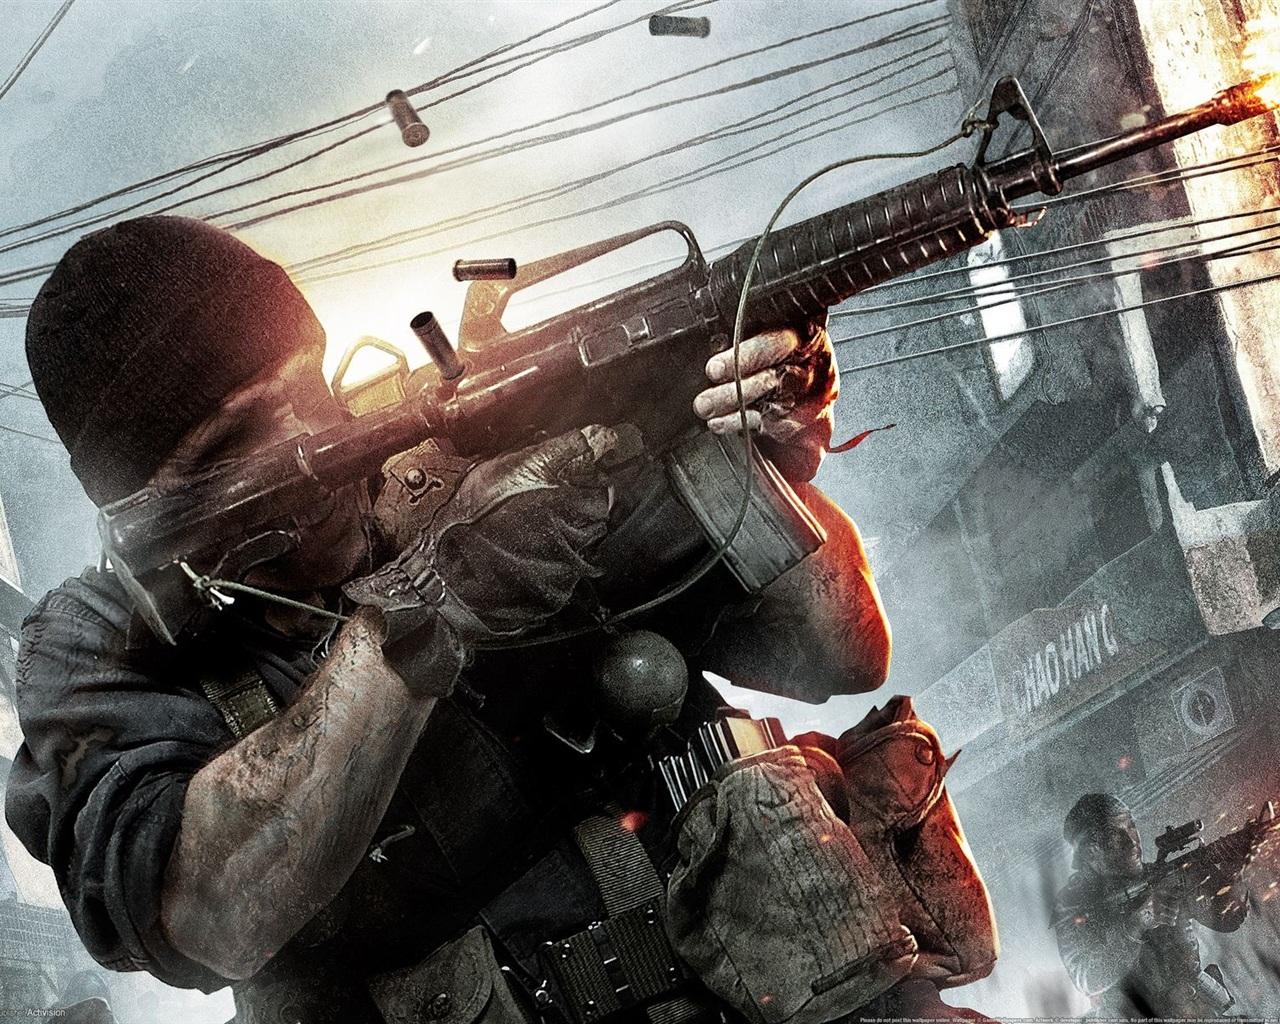 Image-for-Call-Of-Duty-games-Free-HD-wallpaper-wp3806937